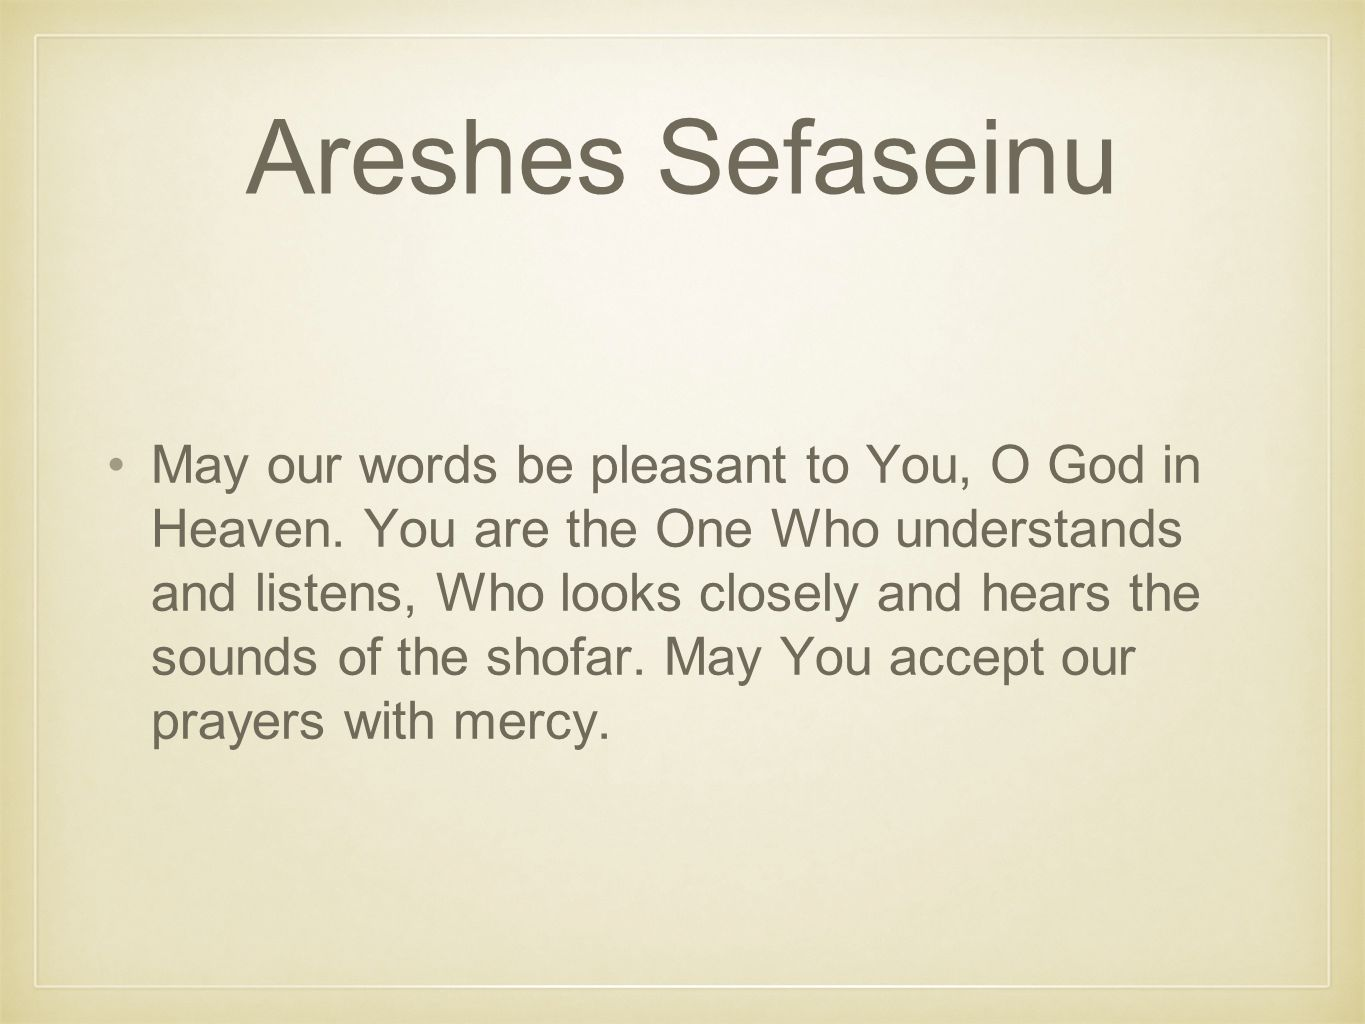 Areshes Sefaseinu May our words be pleasant to You, O God in Heaven.